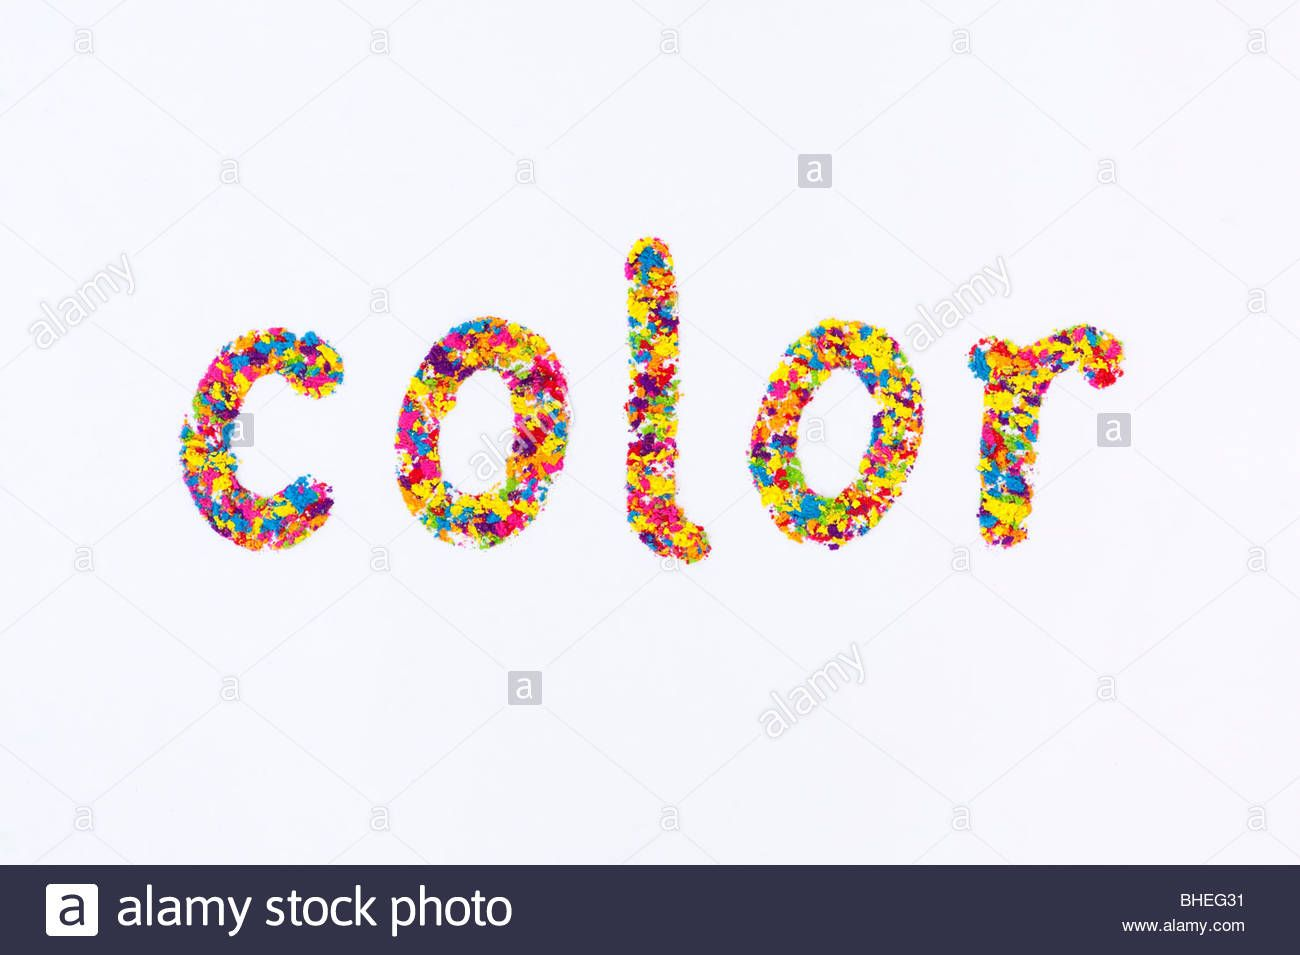 Yahoo Stock Quote Endearing The Word Colour  Yahoo Image Search Results  Quote  Pinterest Design Ideas